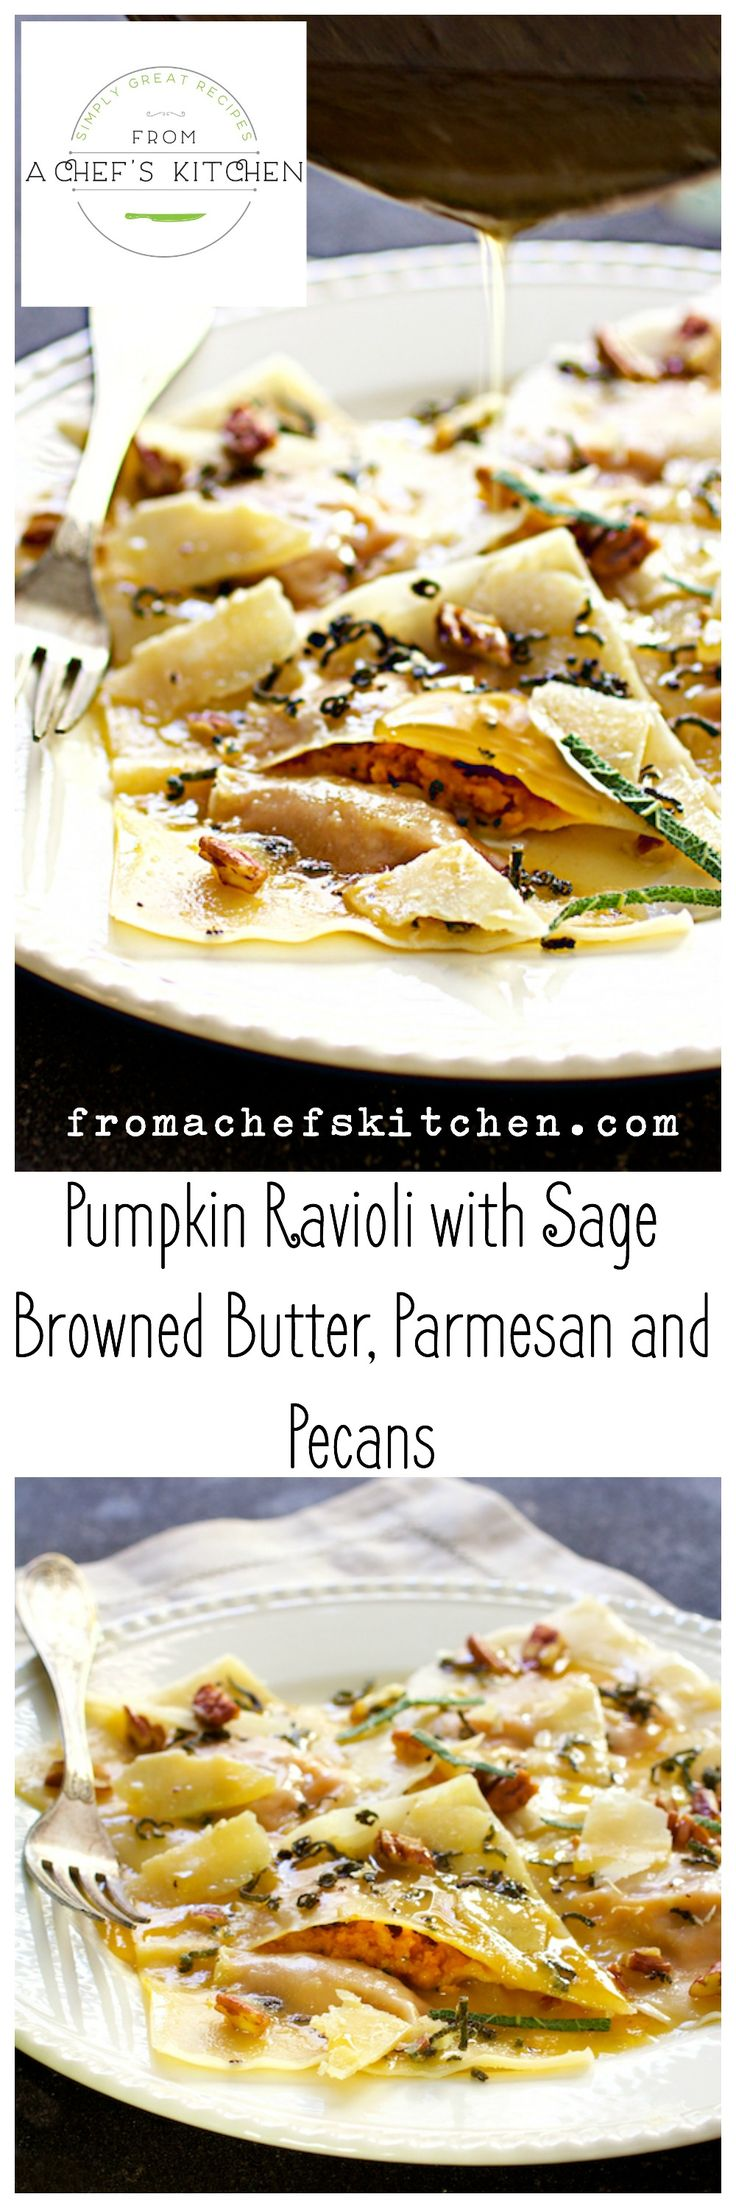 Pumpkin Ravioli with Sage Browned Butter, Parmesan and Pecans uses wonton wrappers and canned pumpkin for a lovely dinner any day of the year! via @chefcarolb